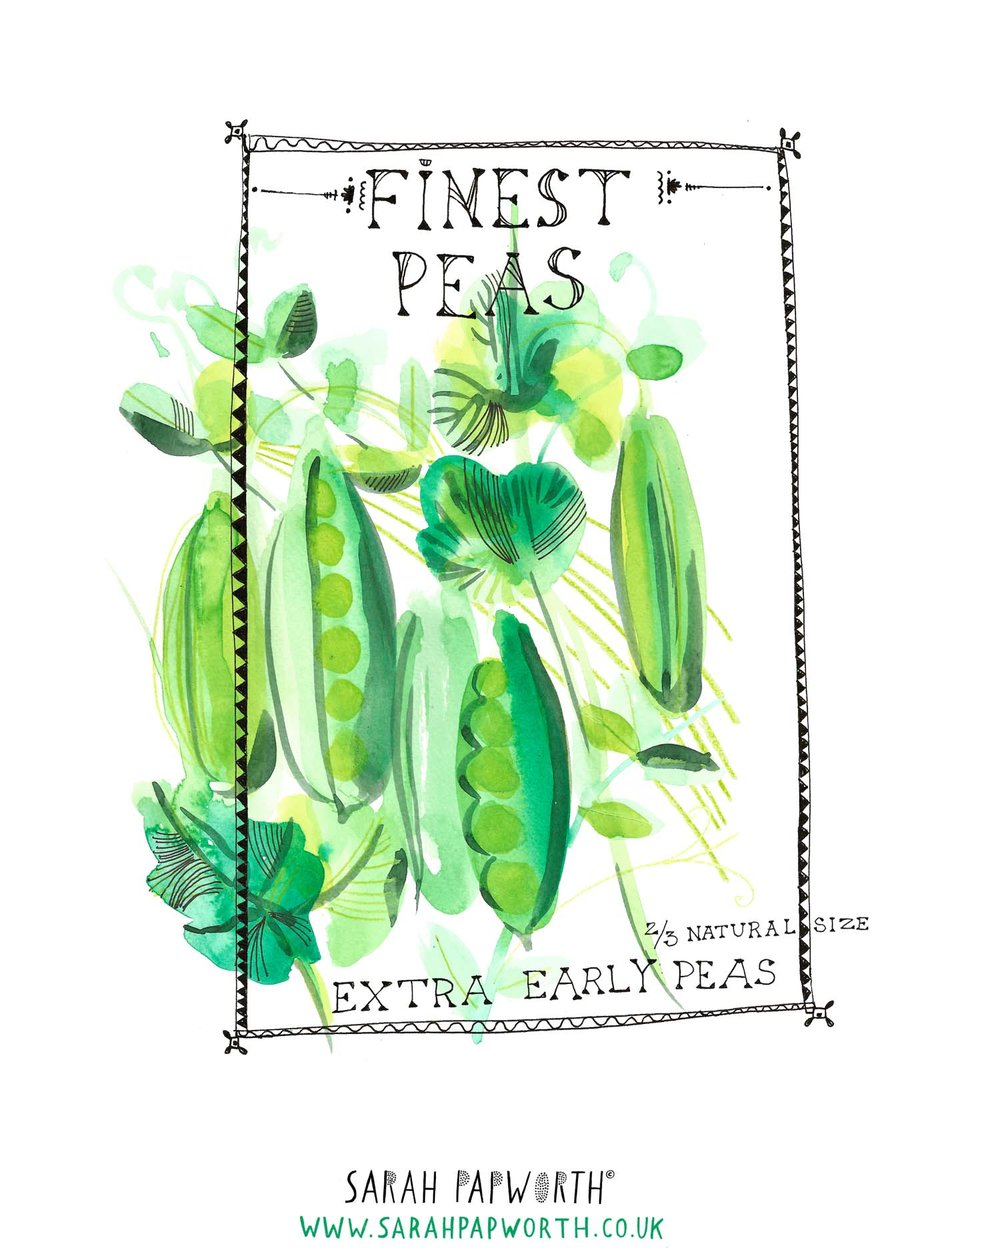 pea illustration food watercolour editorial by sarah papworth.jpg